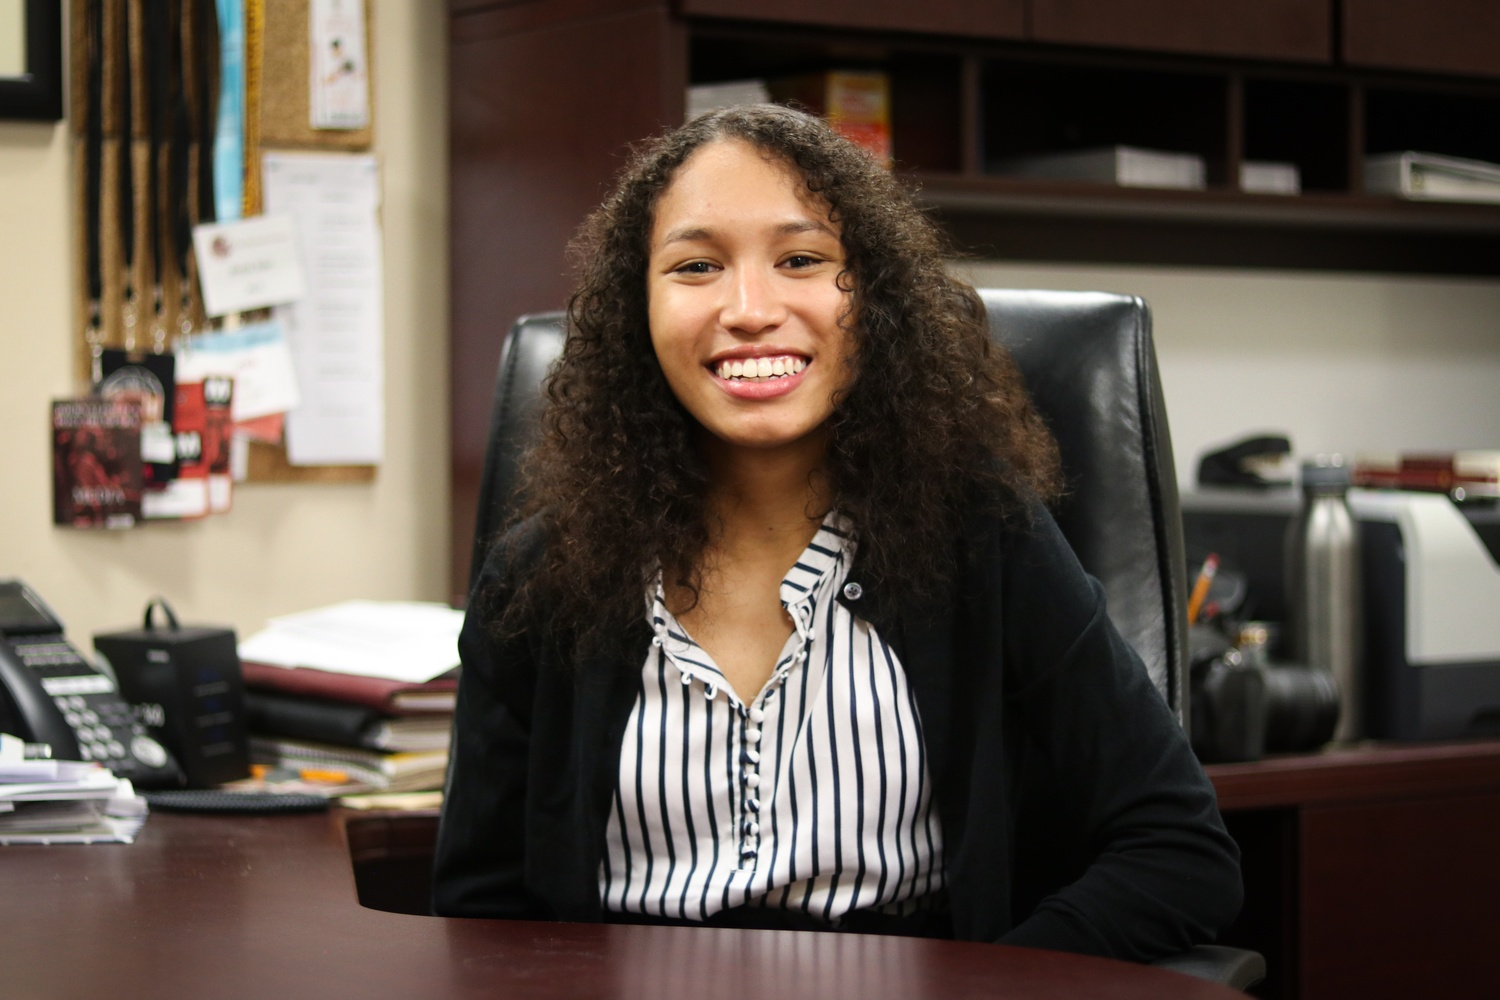 """Kristine E. Guillaume '20 will serve as the President of the 146th Guard of The Harvard Crimson. ©2018 The Harvard Crimson, Inc. All rights reserved. Reprinted with permission."""""""